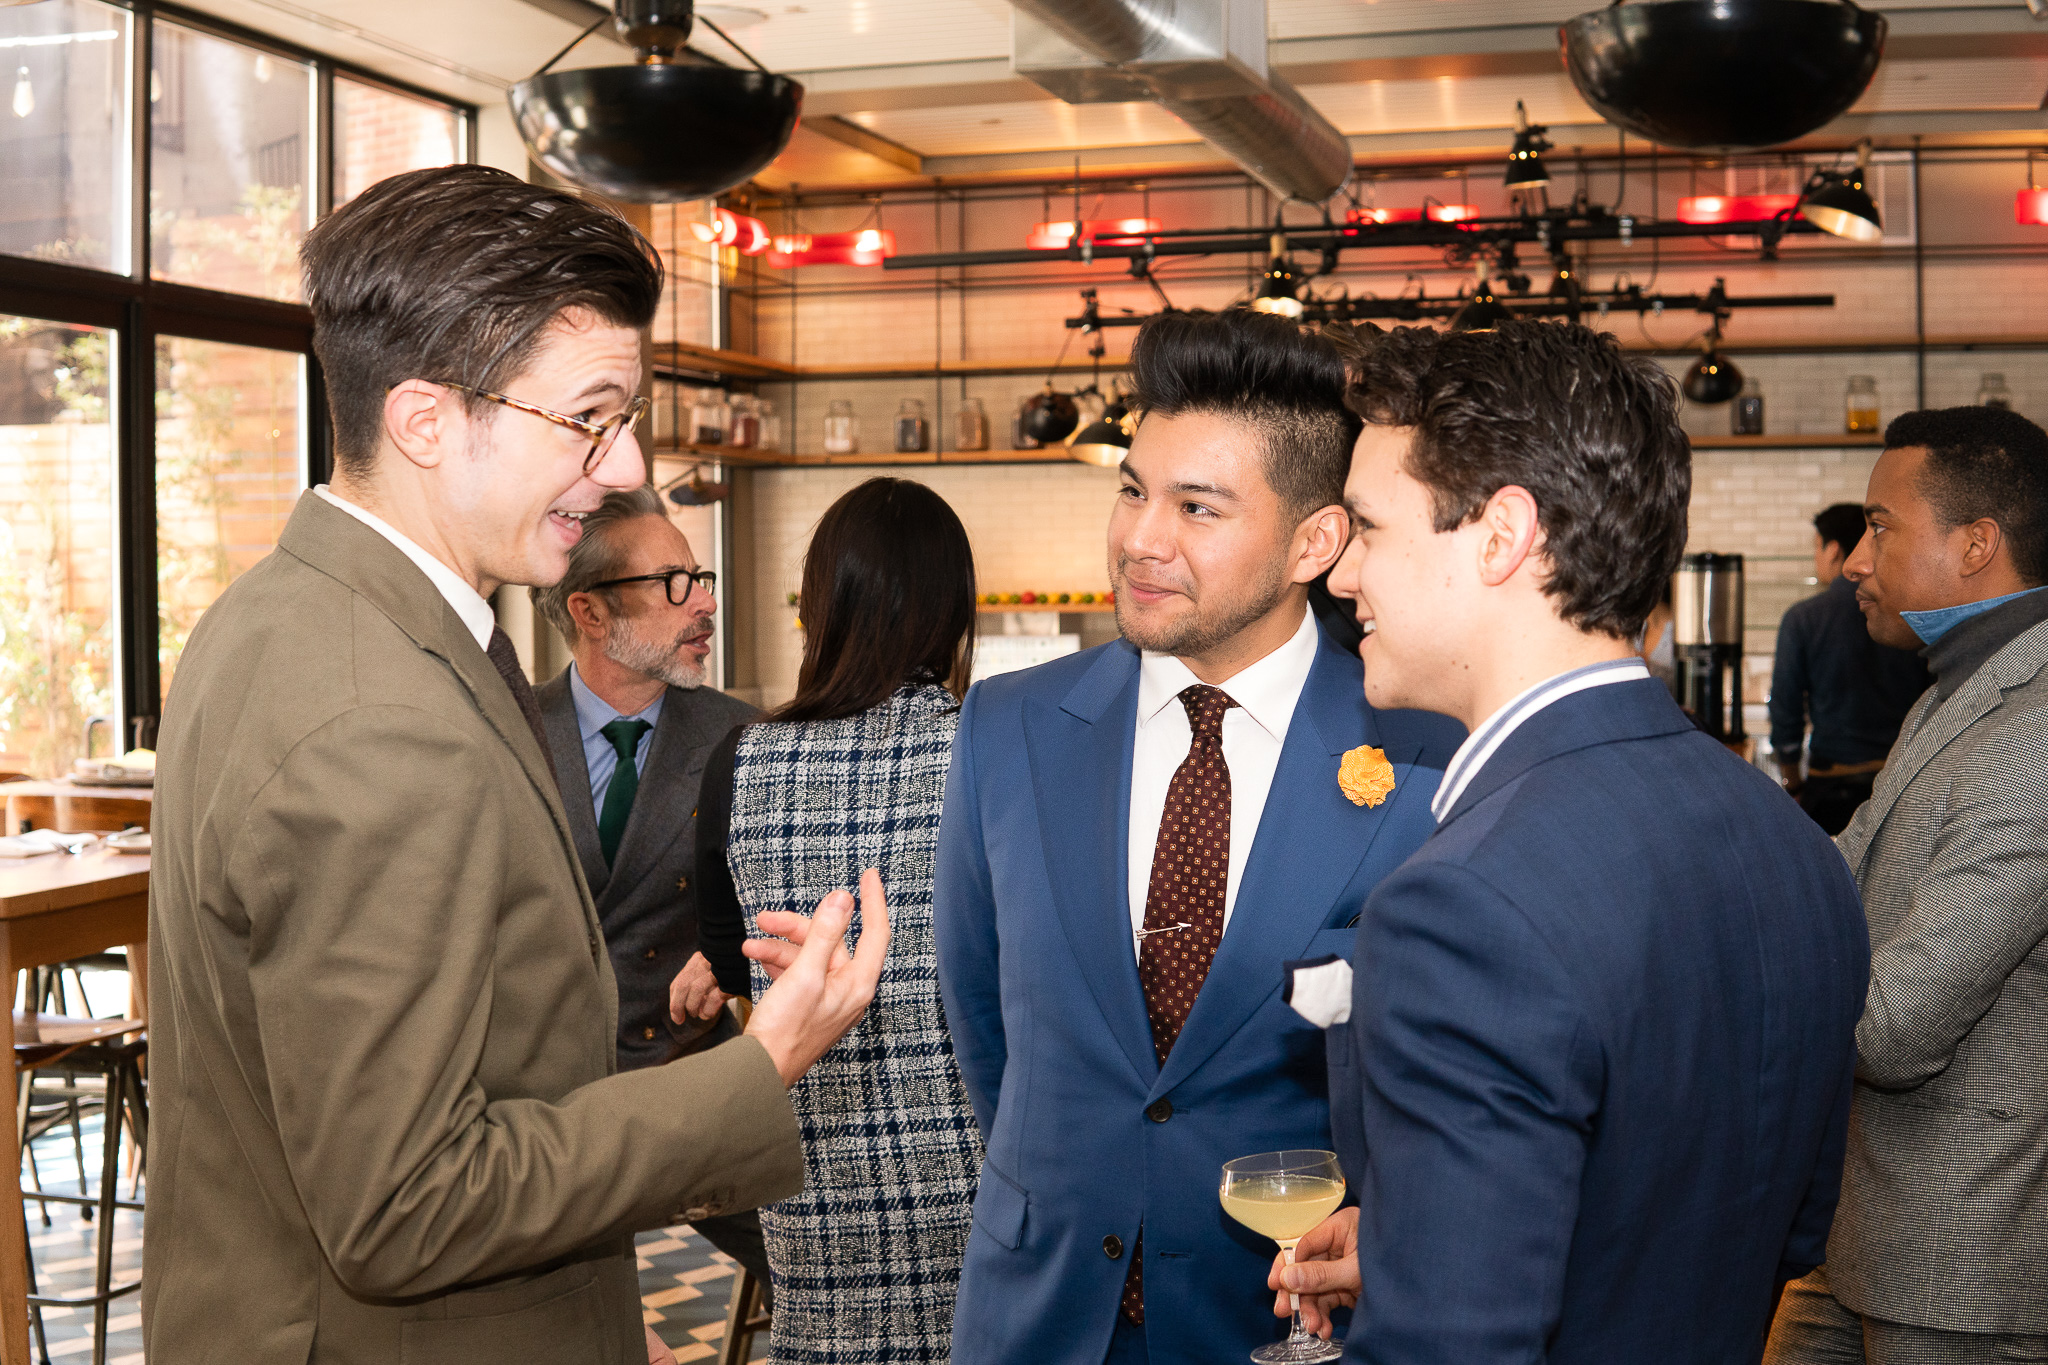 Timothy Jeffreys, Diego Leon, and Adam Gonon attend the BOND OFFICIAL x InStitchu Brunch at Harold's on Saturday, March 23rd, 2019. Photography by, Inexora Media.